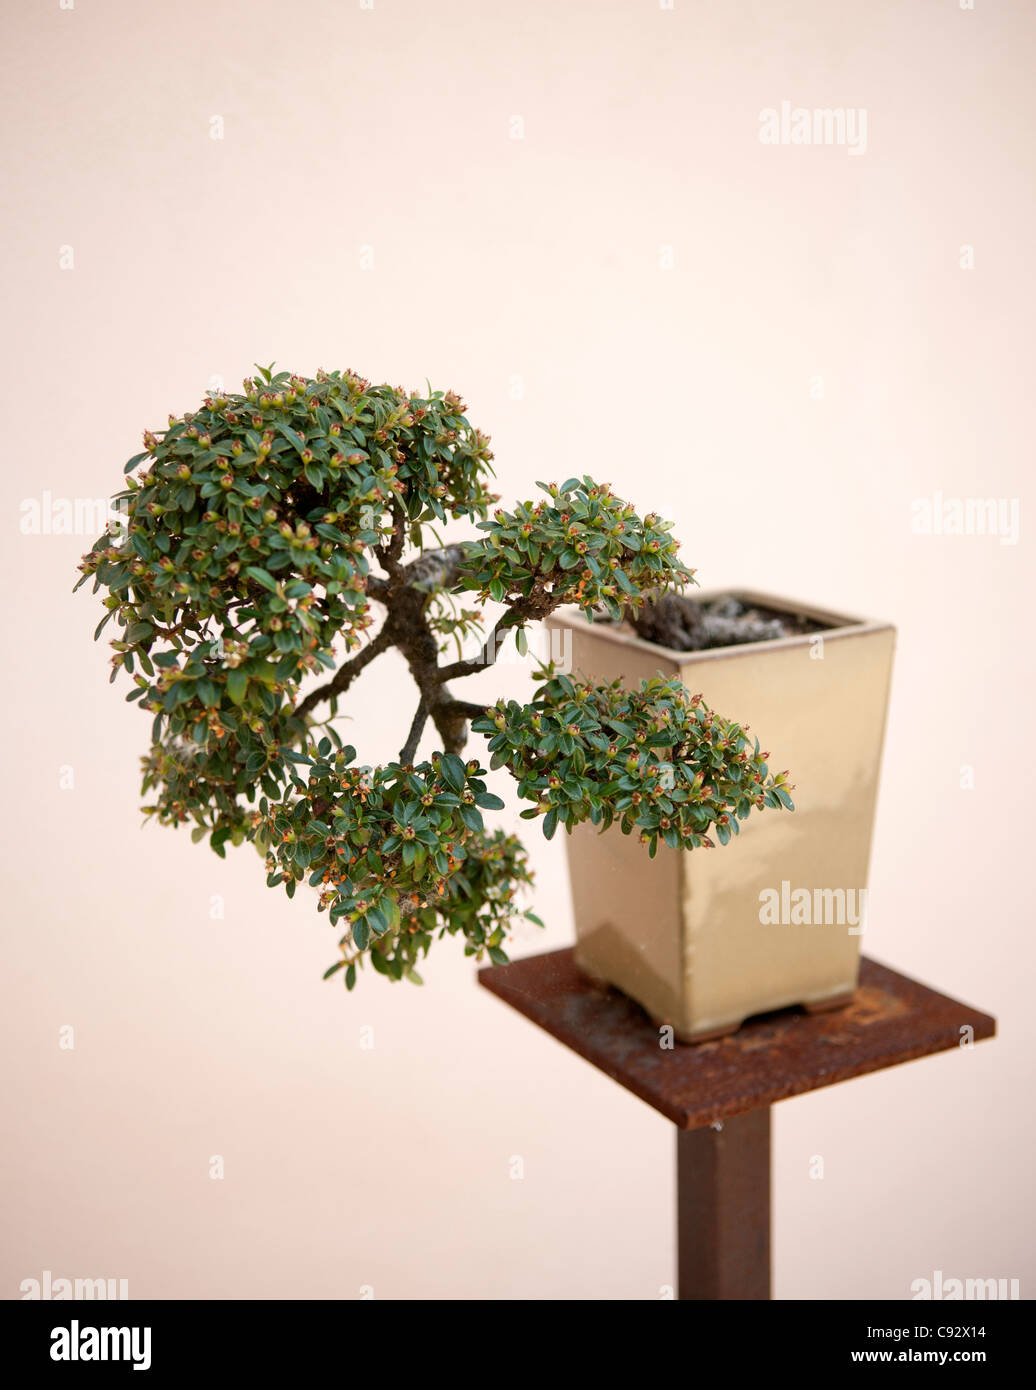 Growing Bonsai Trees Stock Photos Amp Growing Bonsai Trees Stock